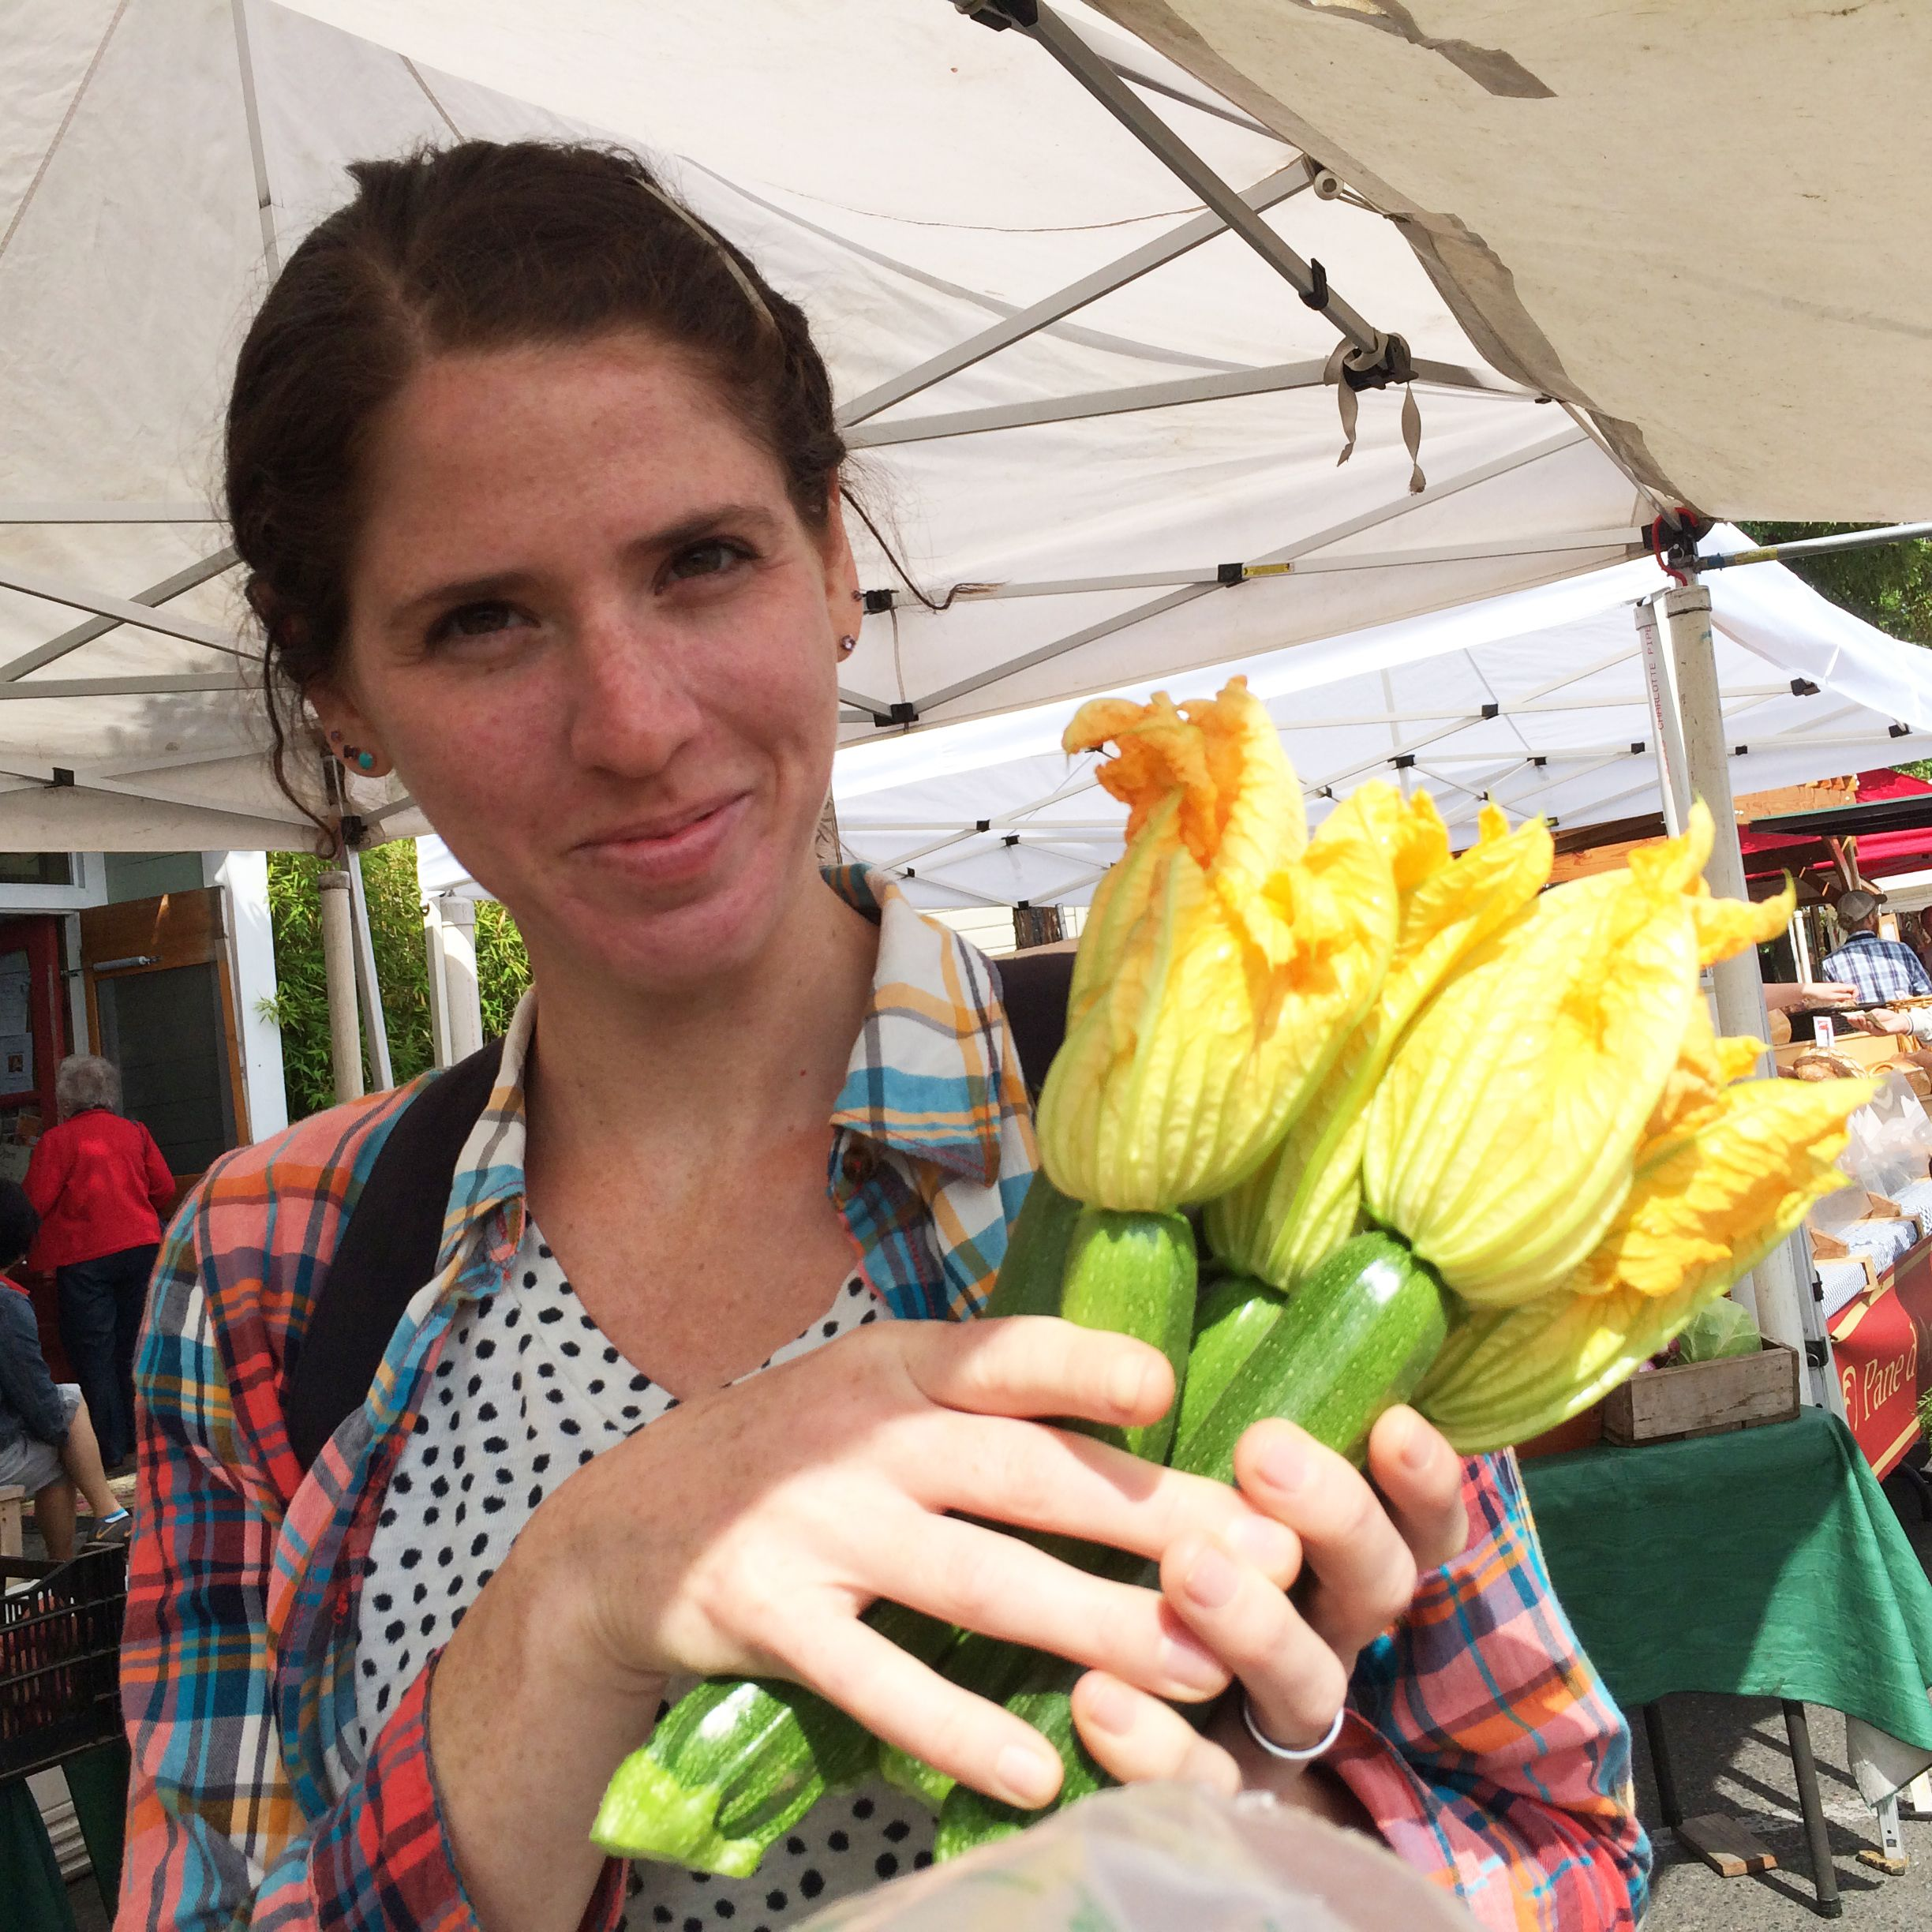 Buying fresh zucchinis at Port Townsend Farmer's Market